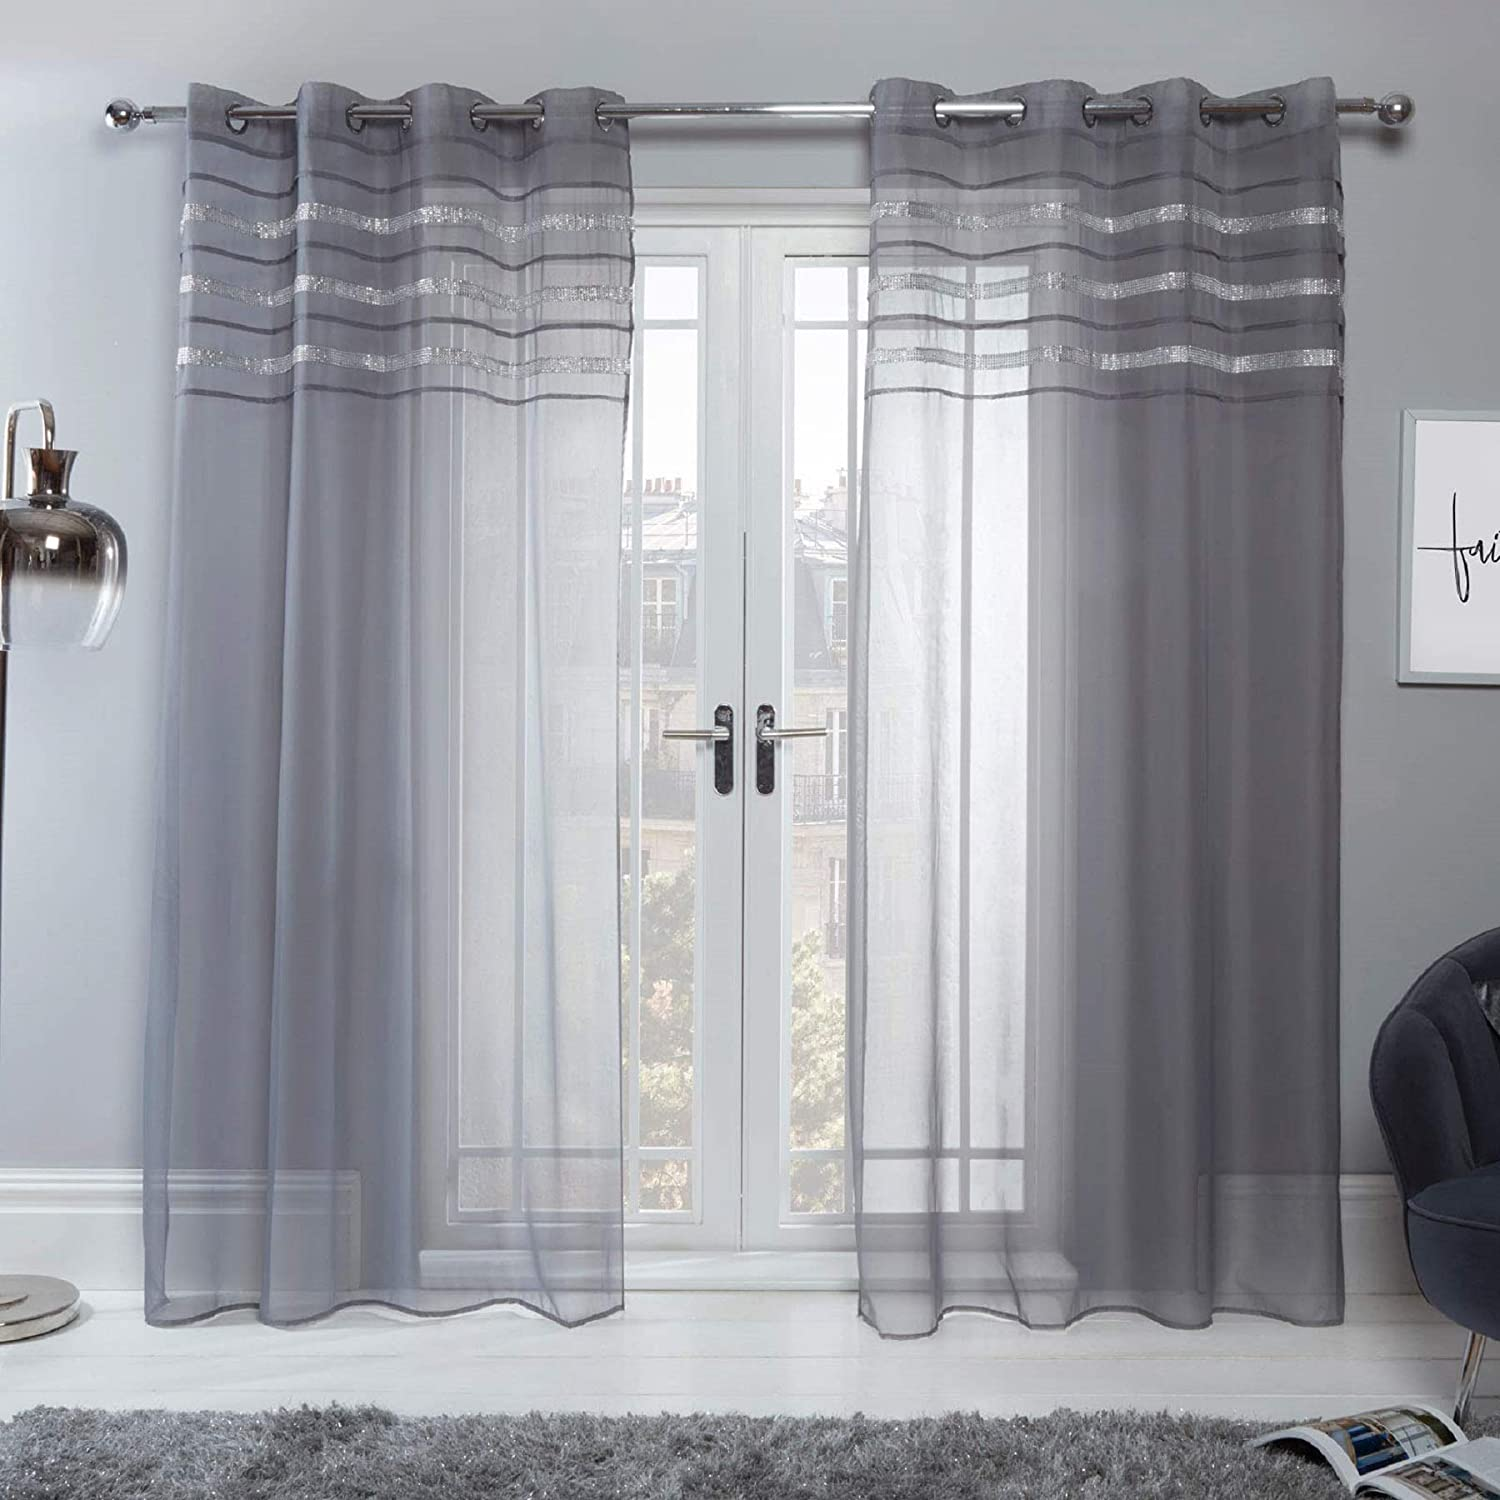 """Sienna Latina Pair of 2 x Diamante Glitzy Voile Net Curtains Eyelet Ring Top Window Panels, Charcoal Grey - 55"""" wide x 87"""" drop 55"""" wide x 87"""" drop Charcoal Grey"""